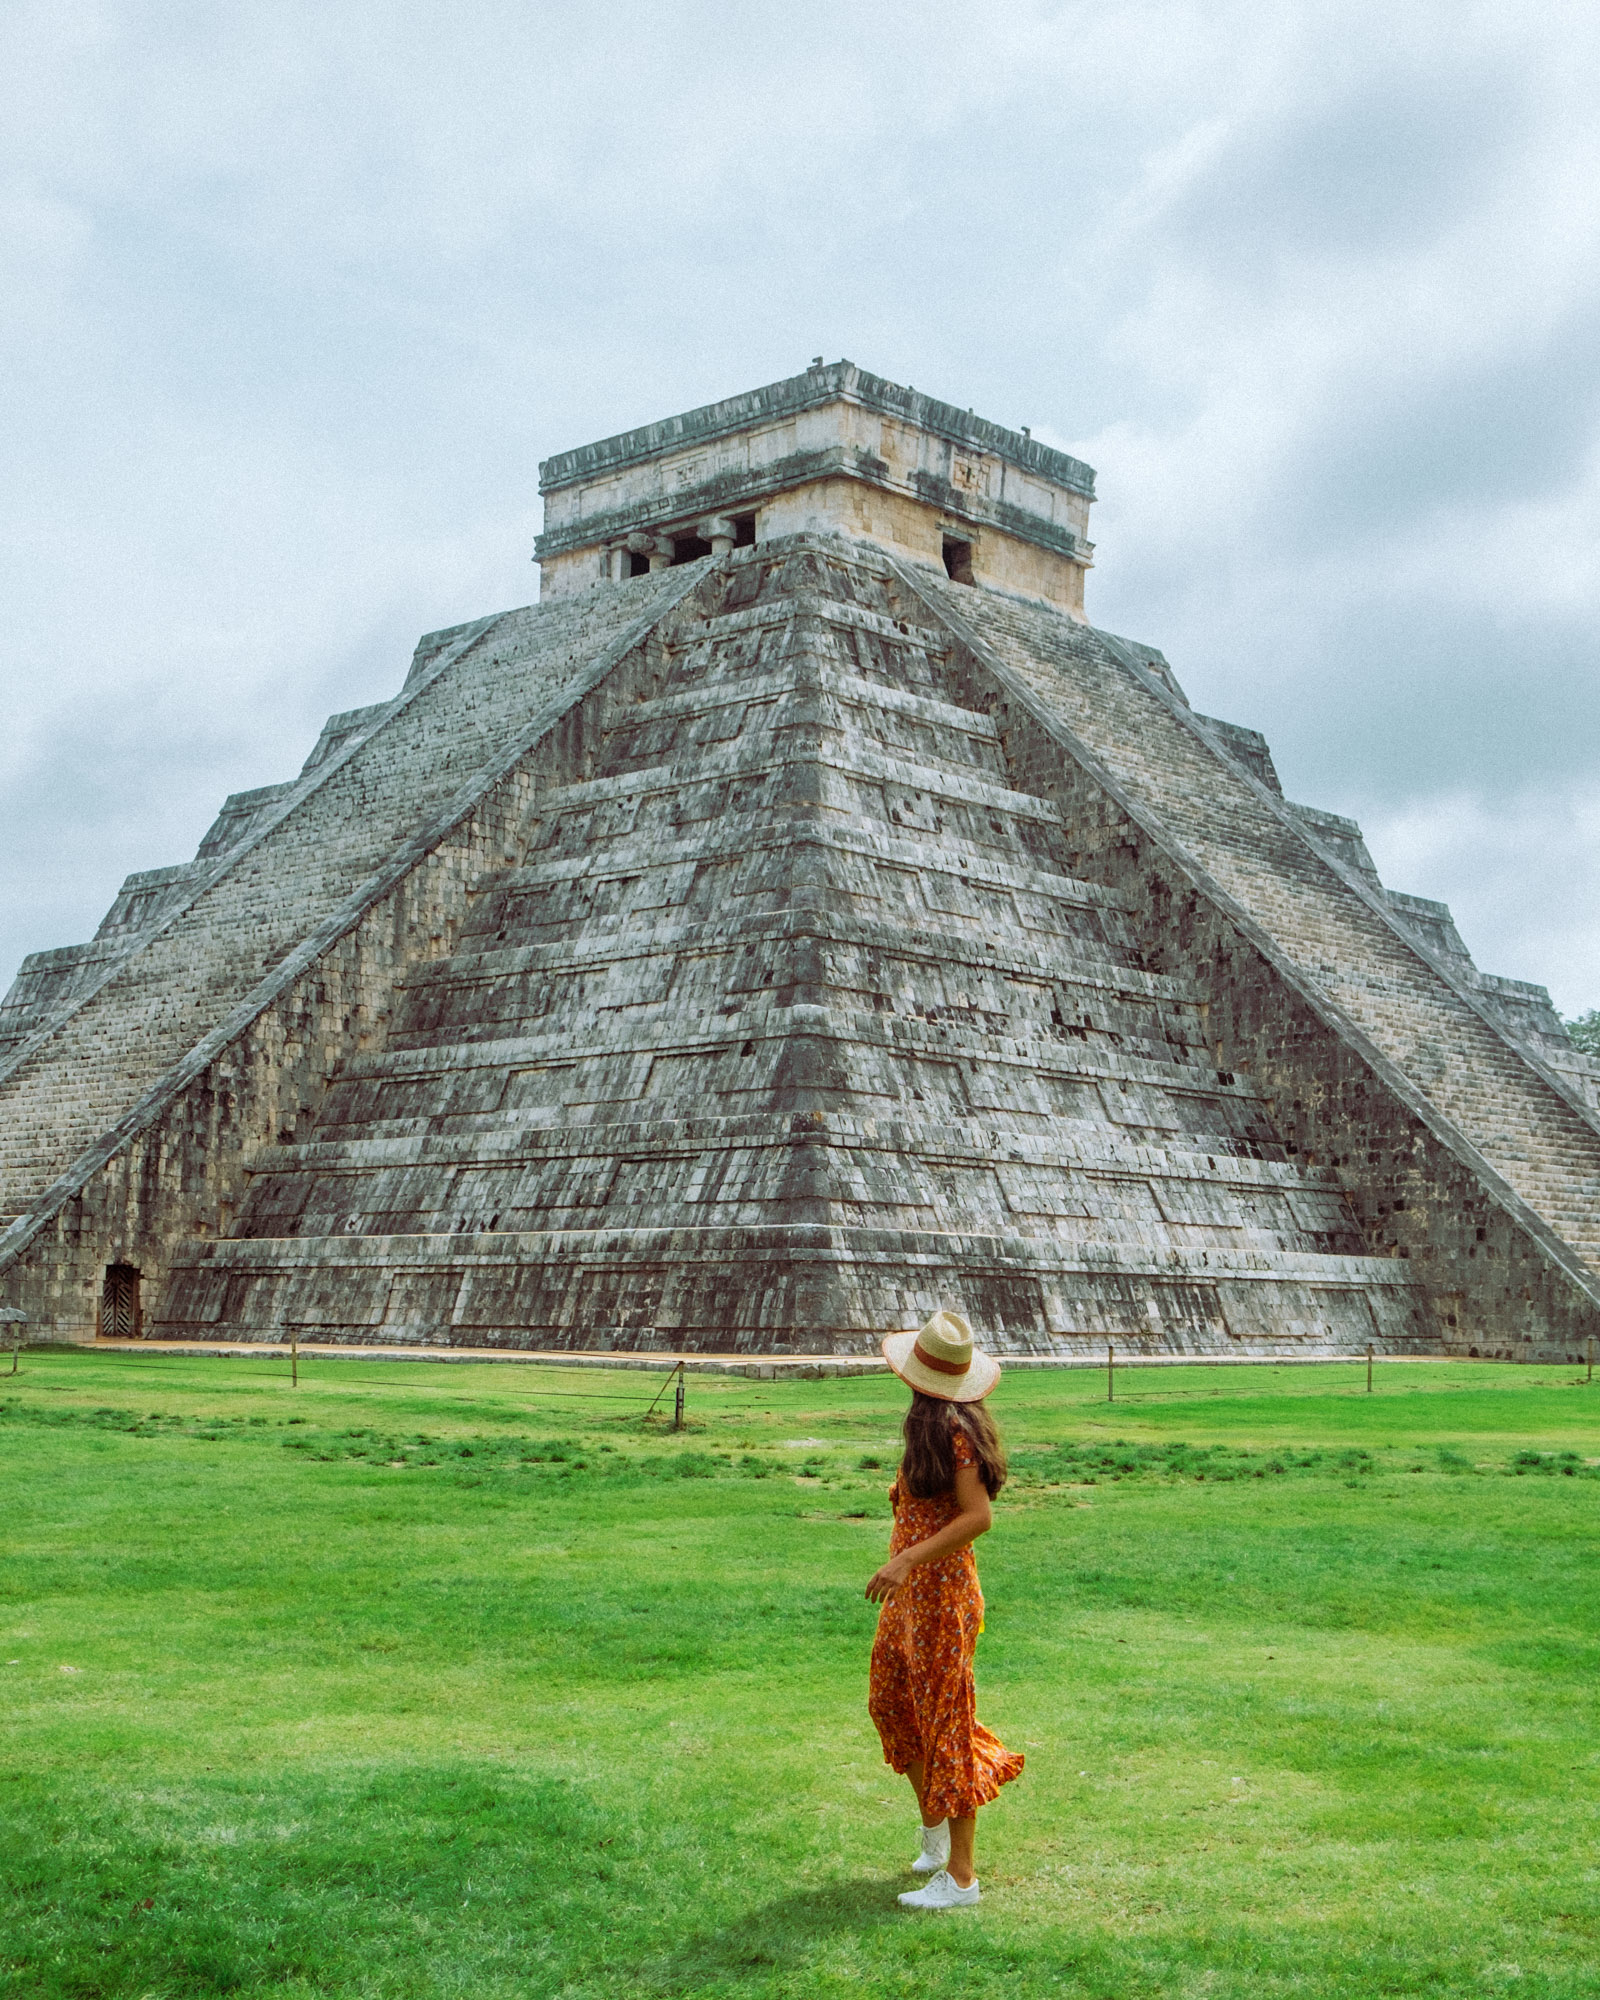 Rachel Off Duty: Woman Poses in Front of the Kukulkan Pyramid at Chichen-Itza, Mexico